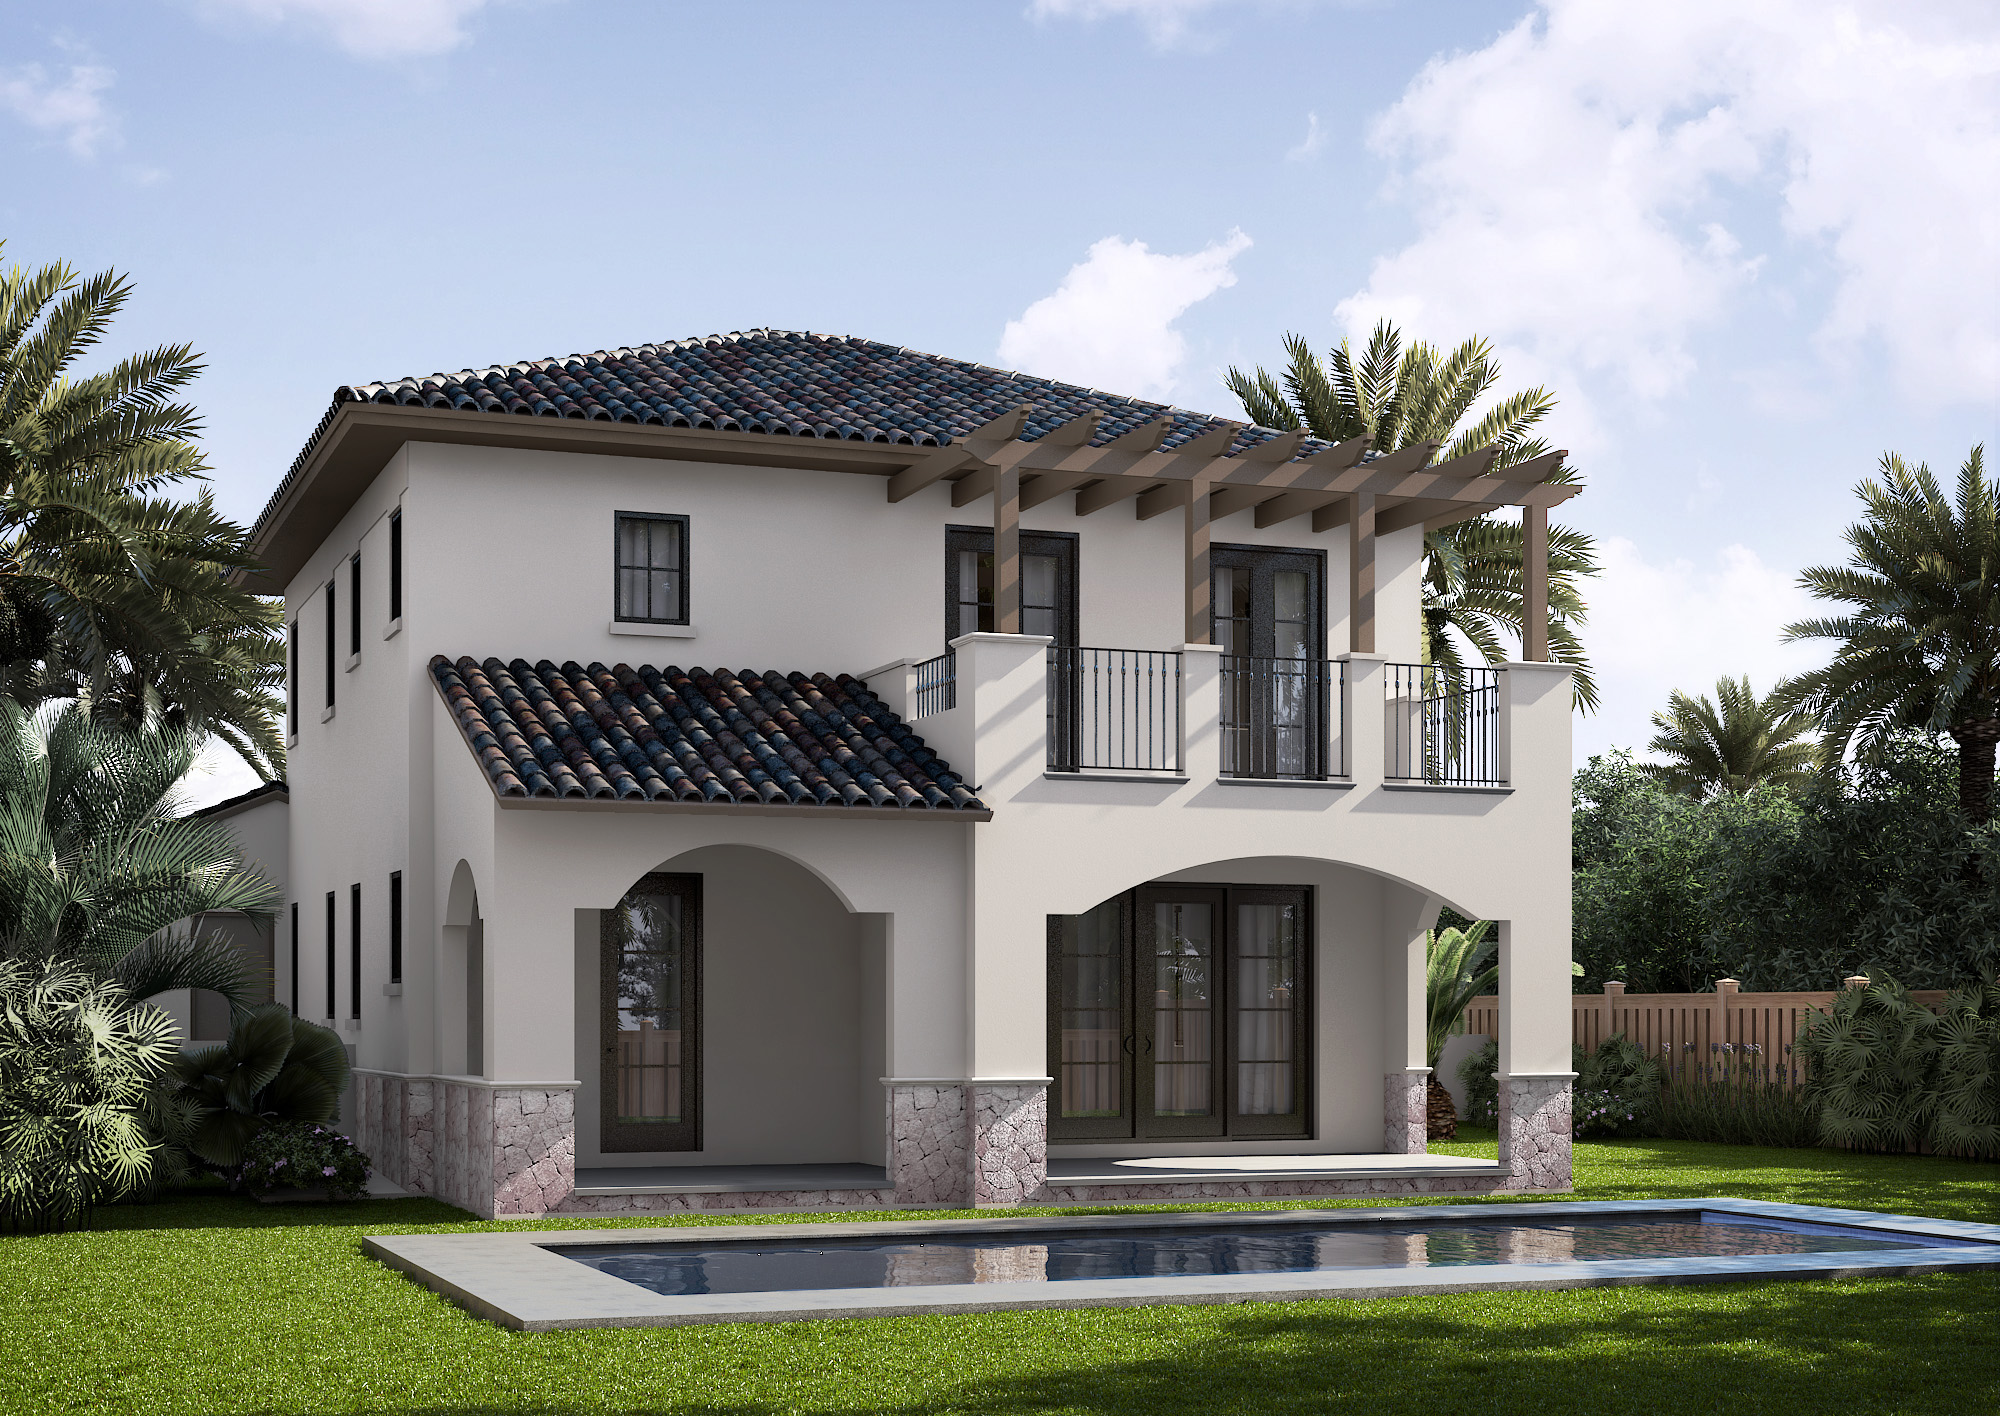 Single Family Home for Sale at 1310 San Benito Ave Coral Gables, Florida, 33134 United States